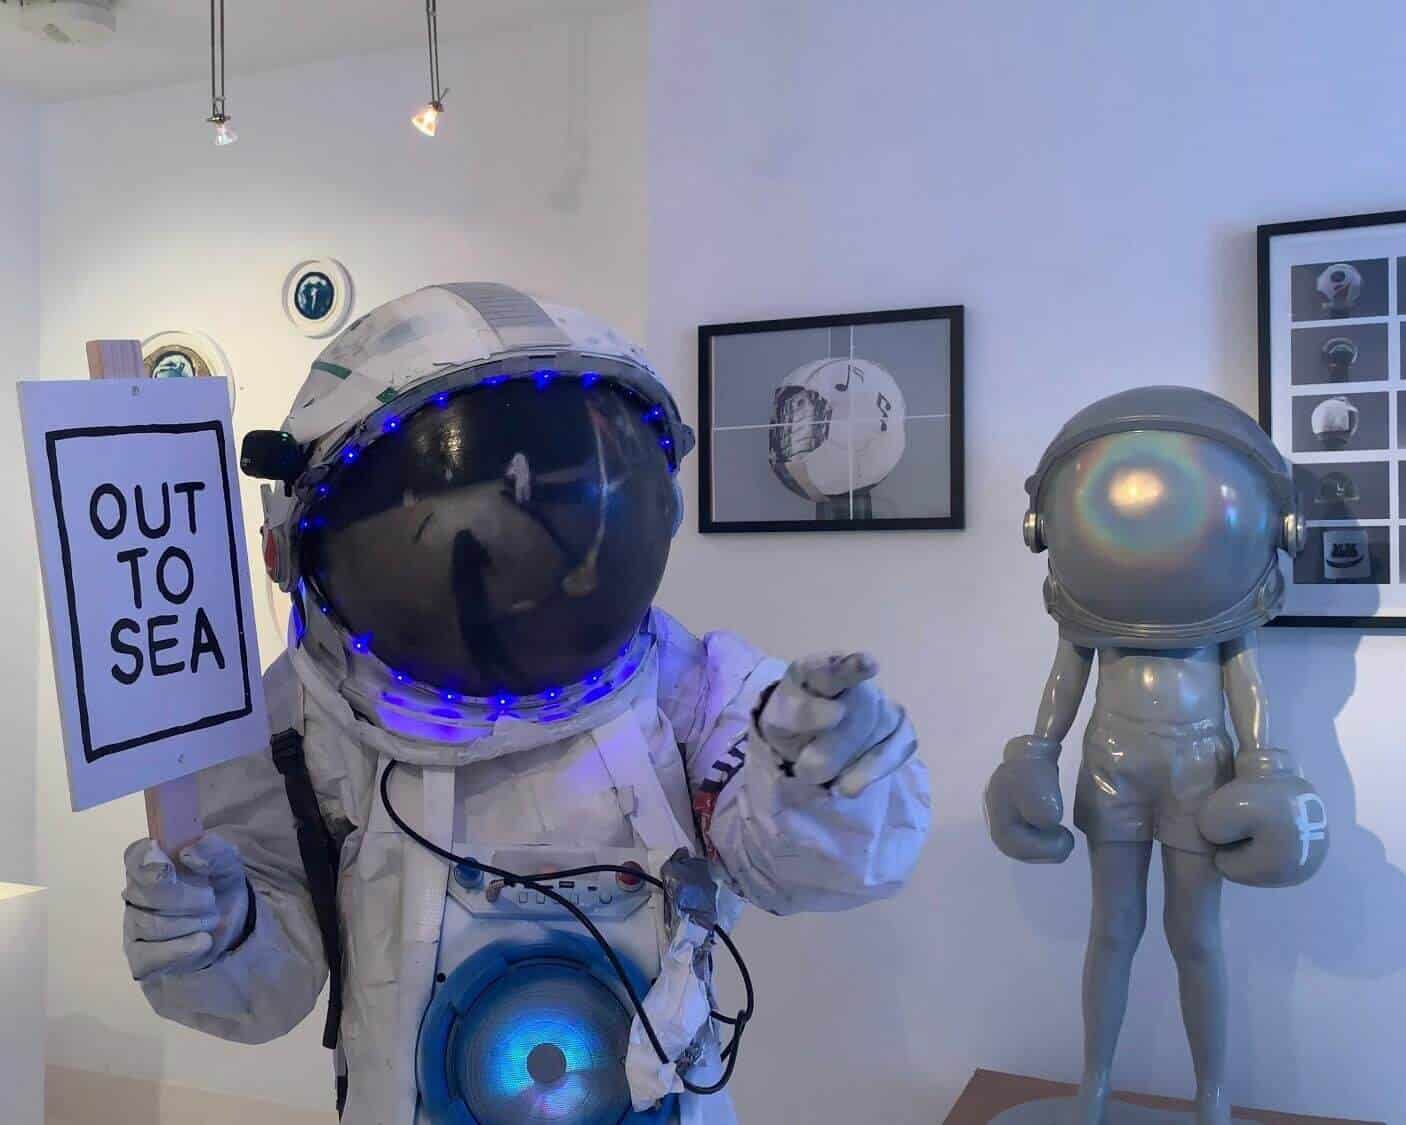 Ben-Moore-Astronaut-One-Small-Step-Installation+(11)